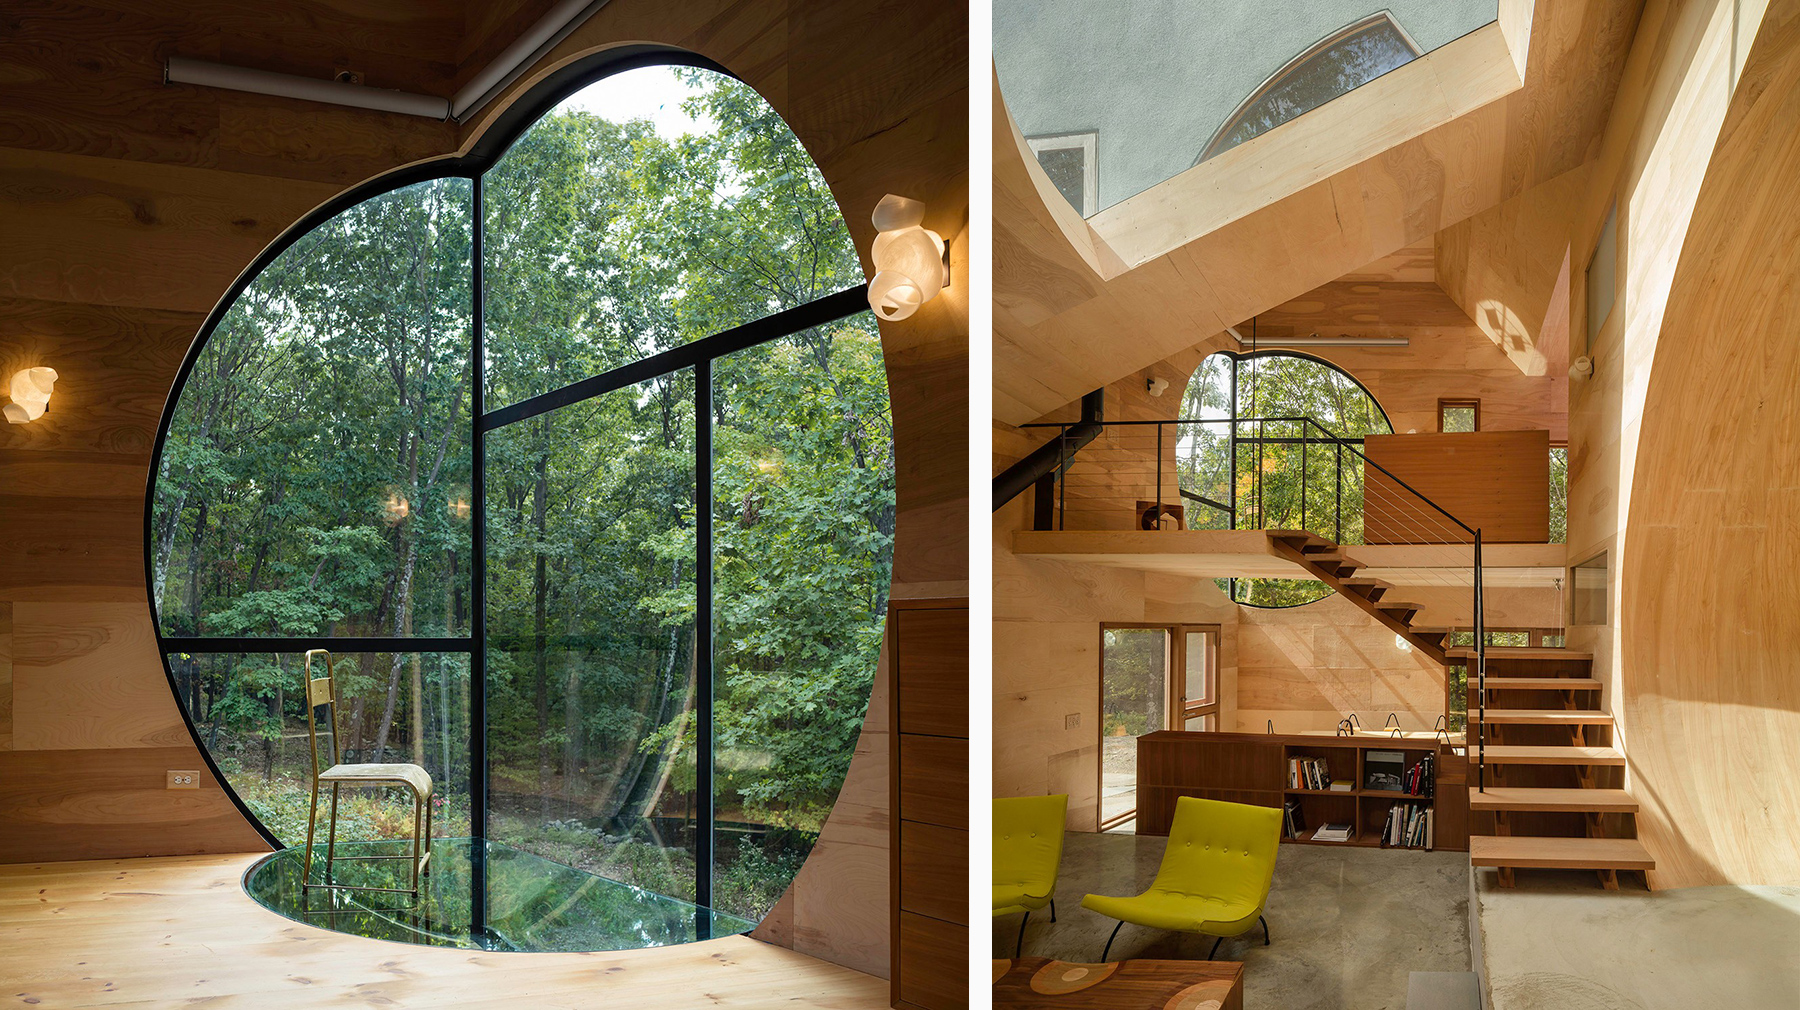 innovative cabin interior design | 5 holiday homes for rent designed by top architects - The ...